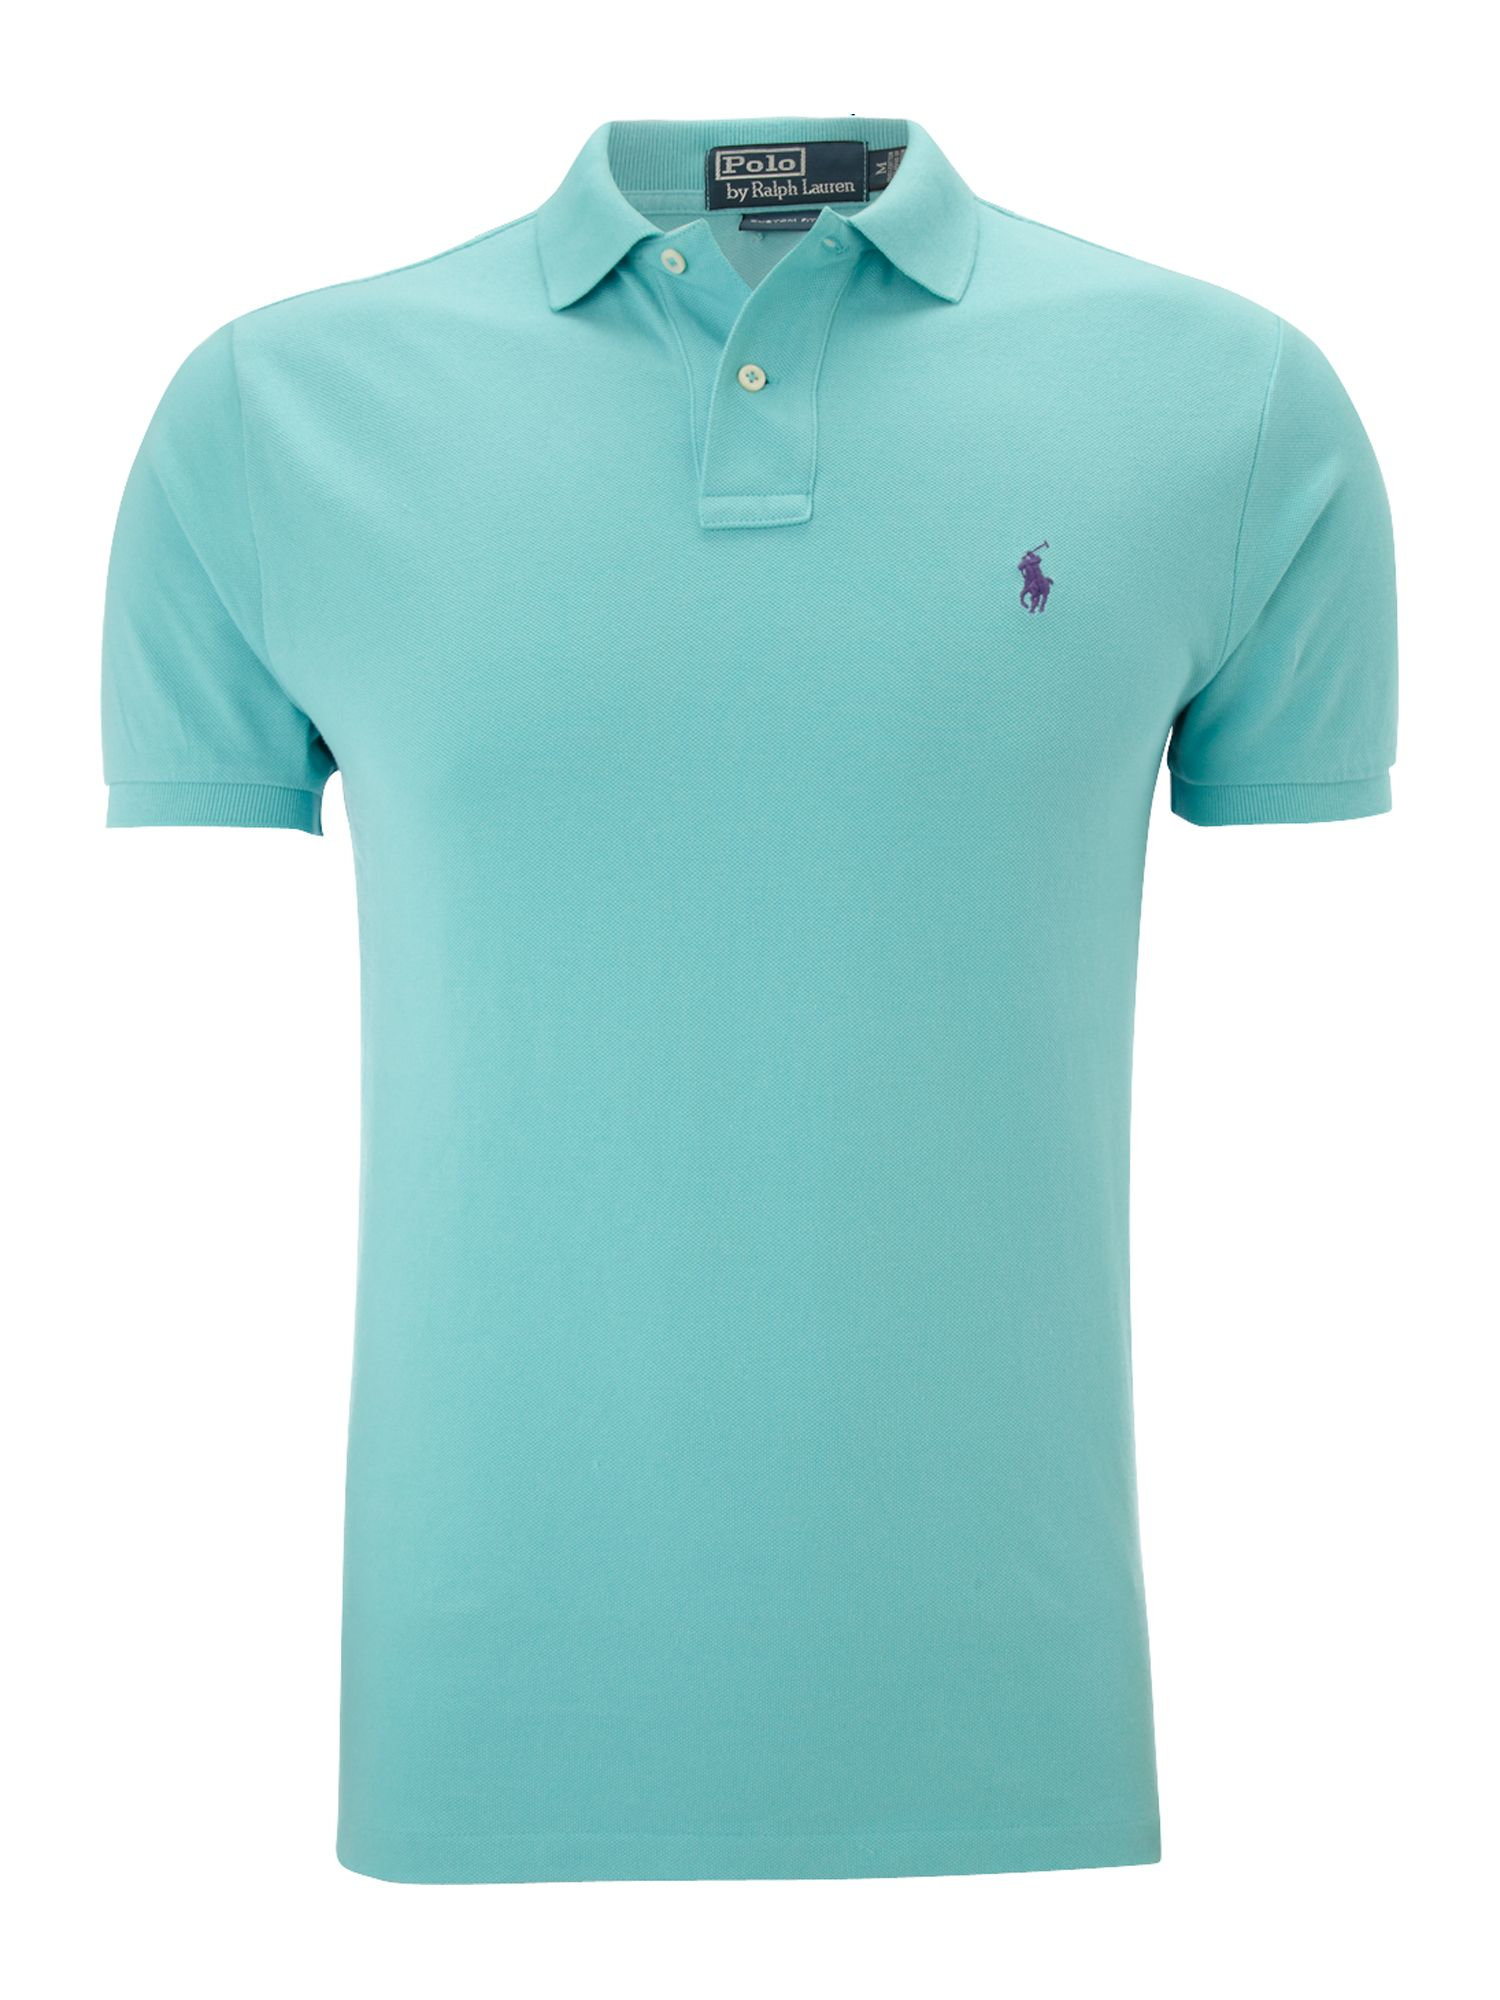 Polo ralph lauren classic custom fitted polo shirt in blue for Custom design polo shirts